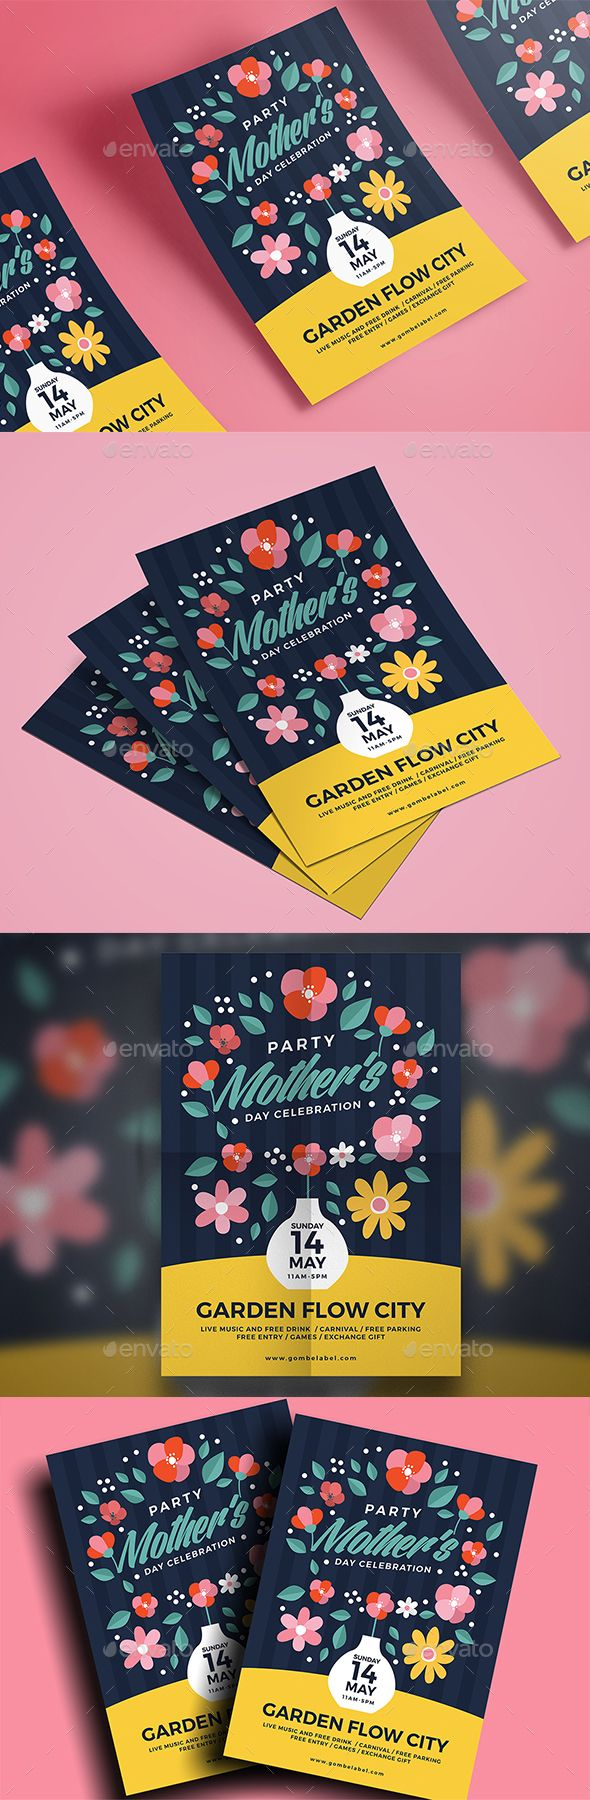 Mother's Day Flyer Template PSD, AI